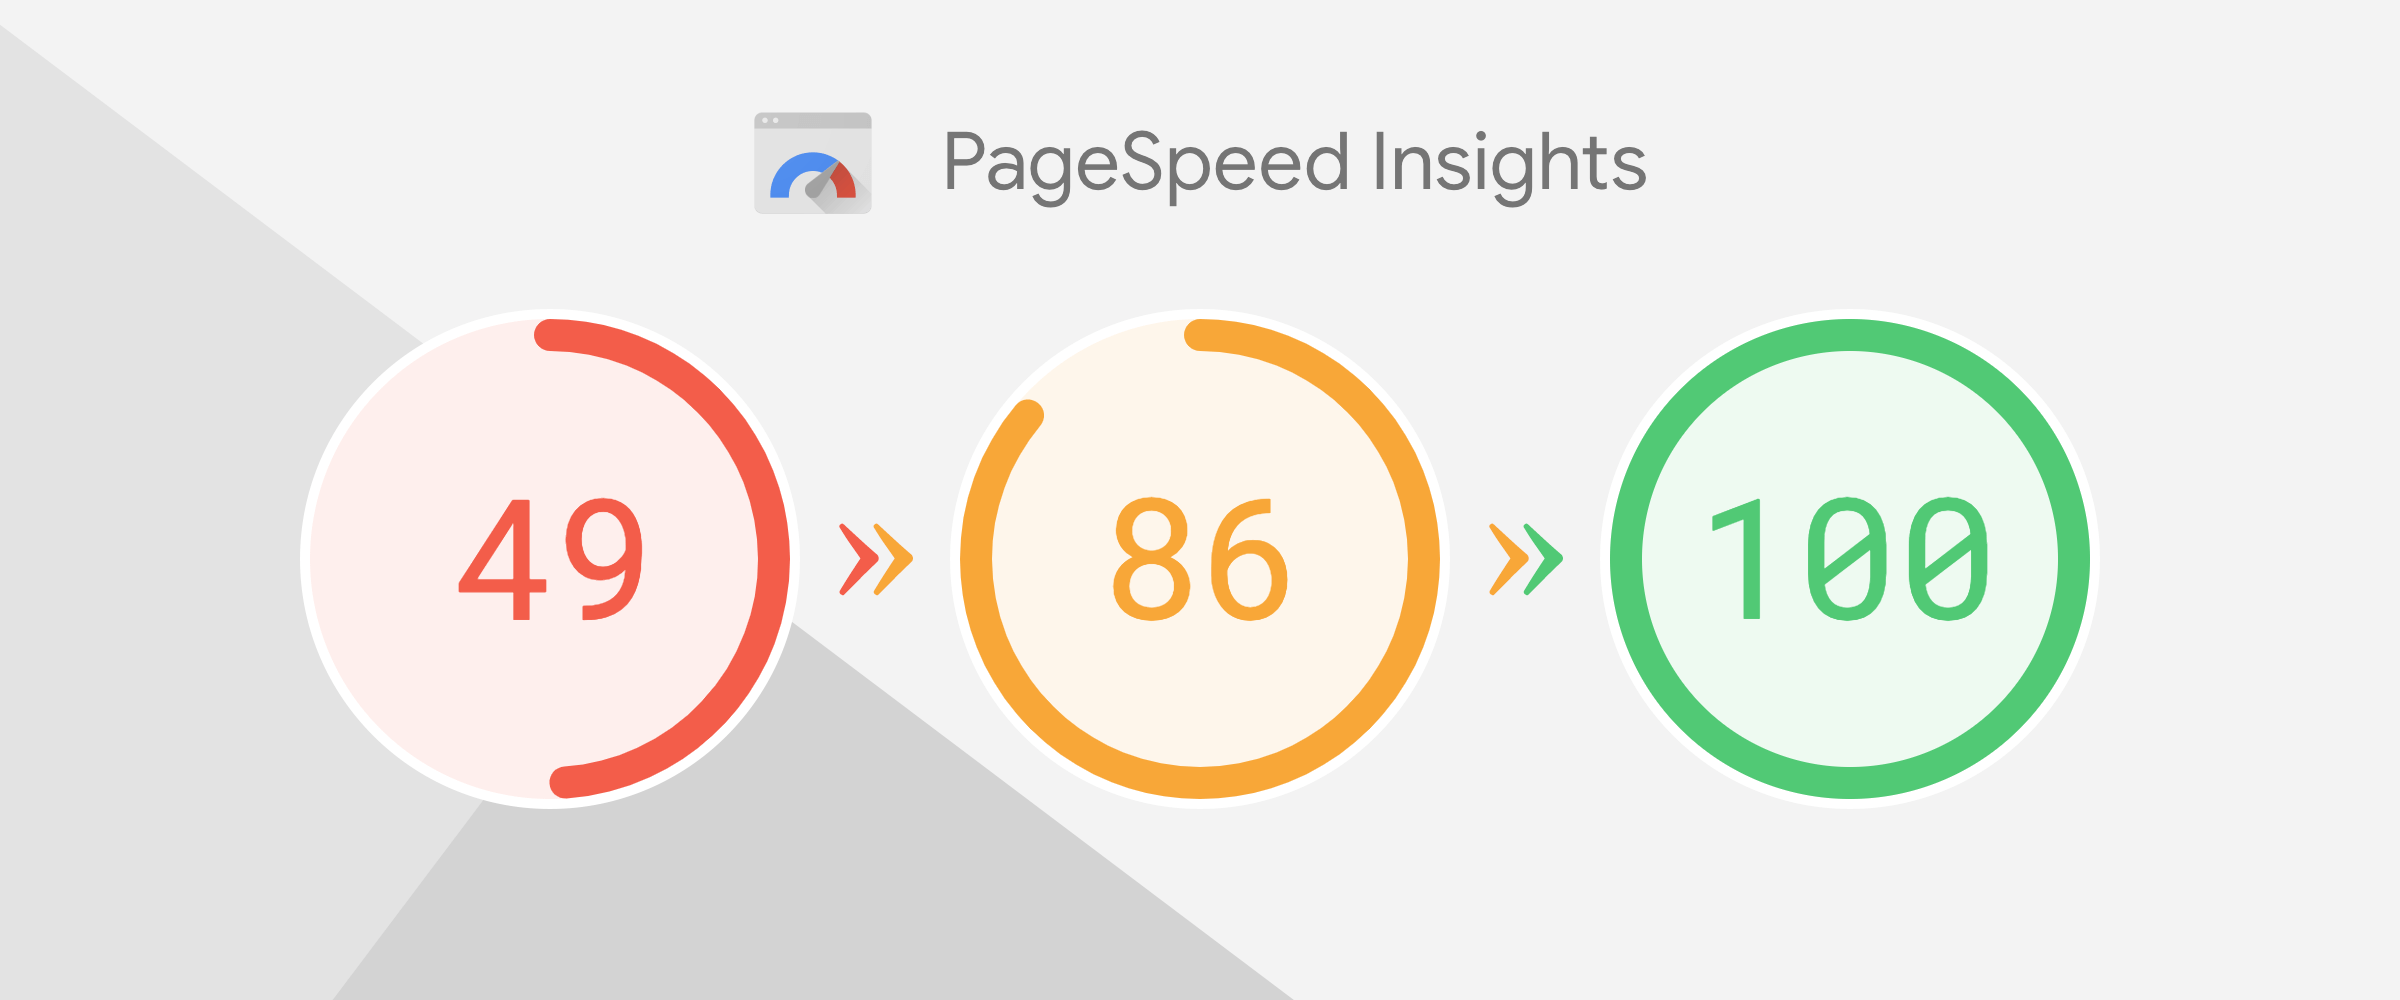 Improve your website's performance and score 100 on Google PageSpeed  Insights